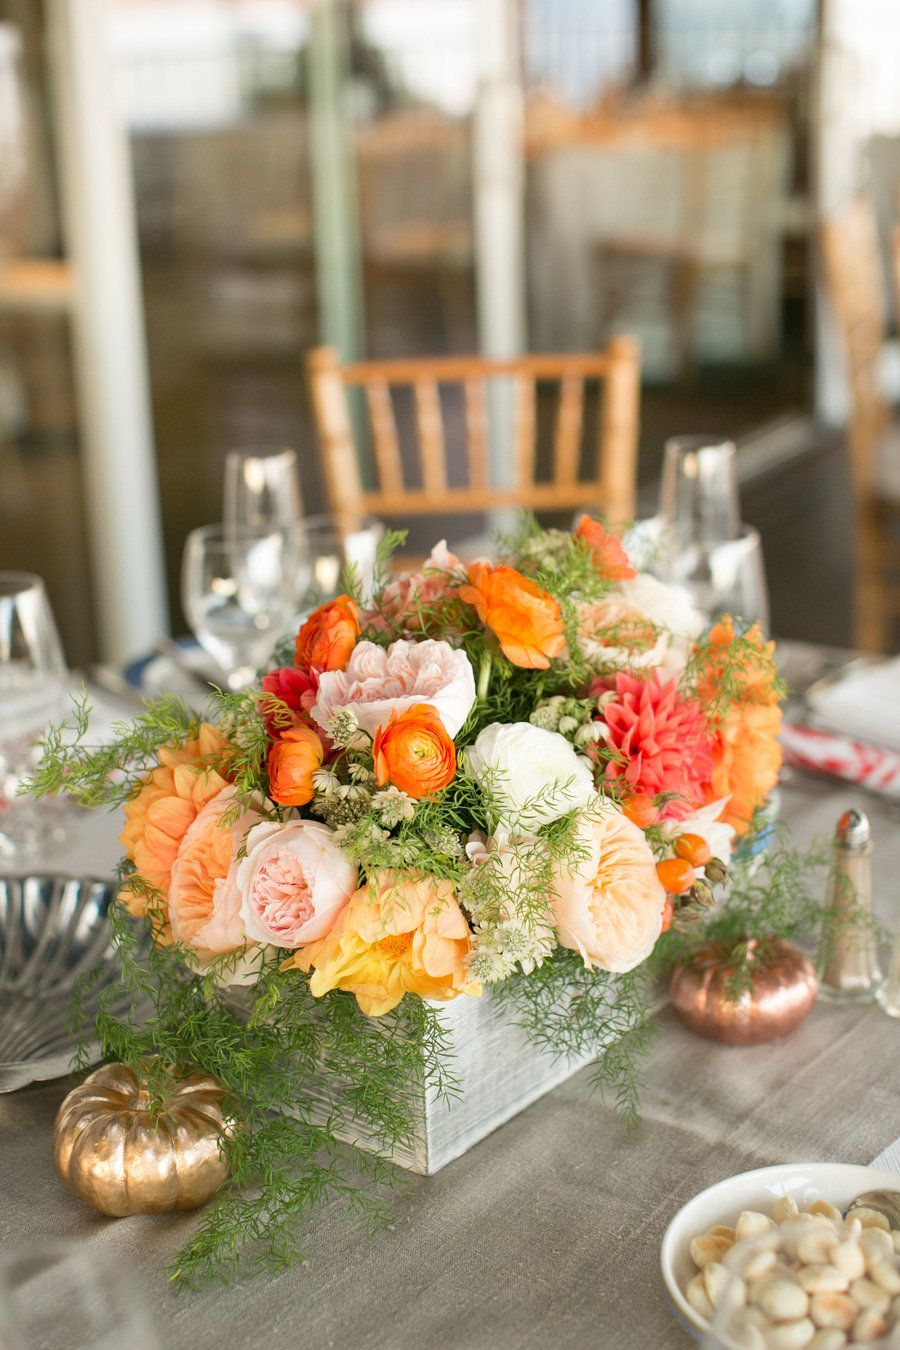 #centerpiece #fall | See the #Wedding:  http://stylemepretty.com/2013/01/28/cape-cod-wedding-from-lovely-little-details